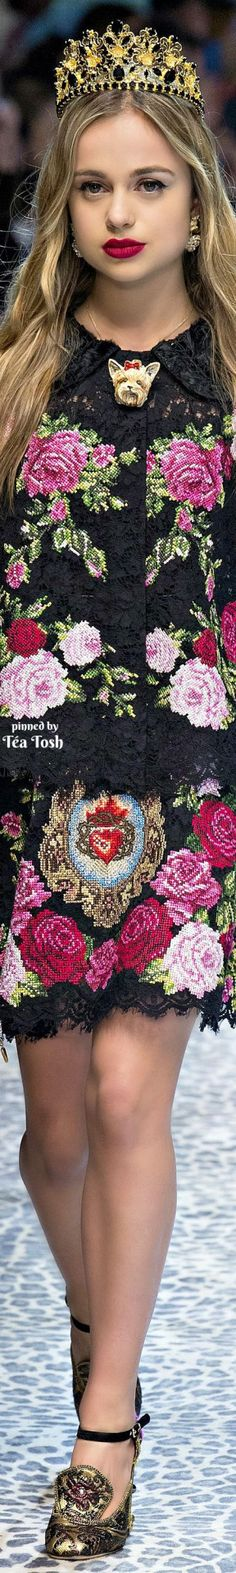 ❇Téa Tosh❇ Dolce & Gabbana, Fall 2017, Ready-to-Wear Collection